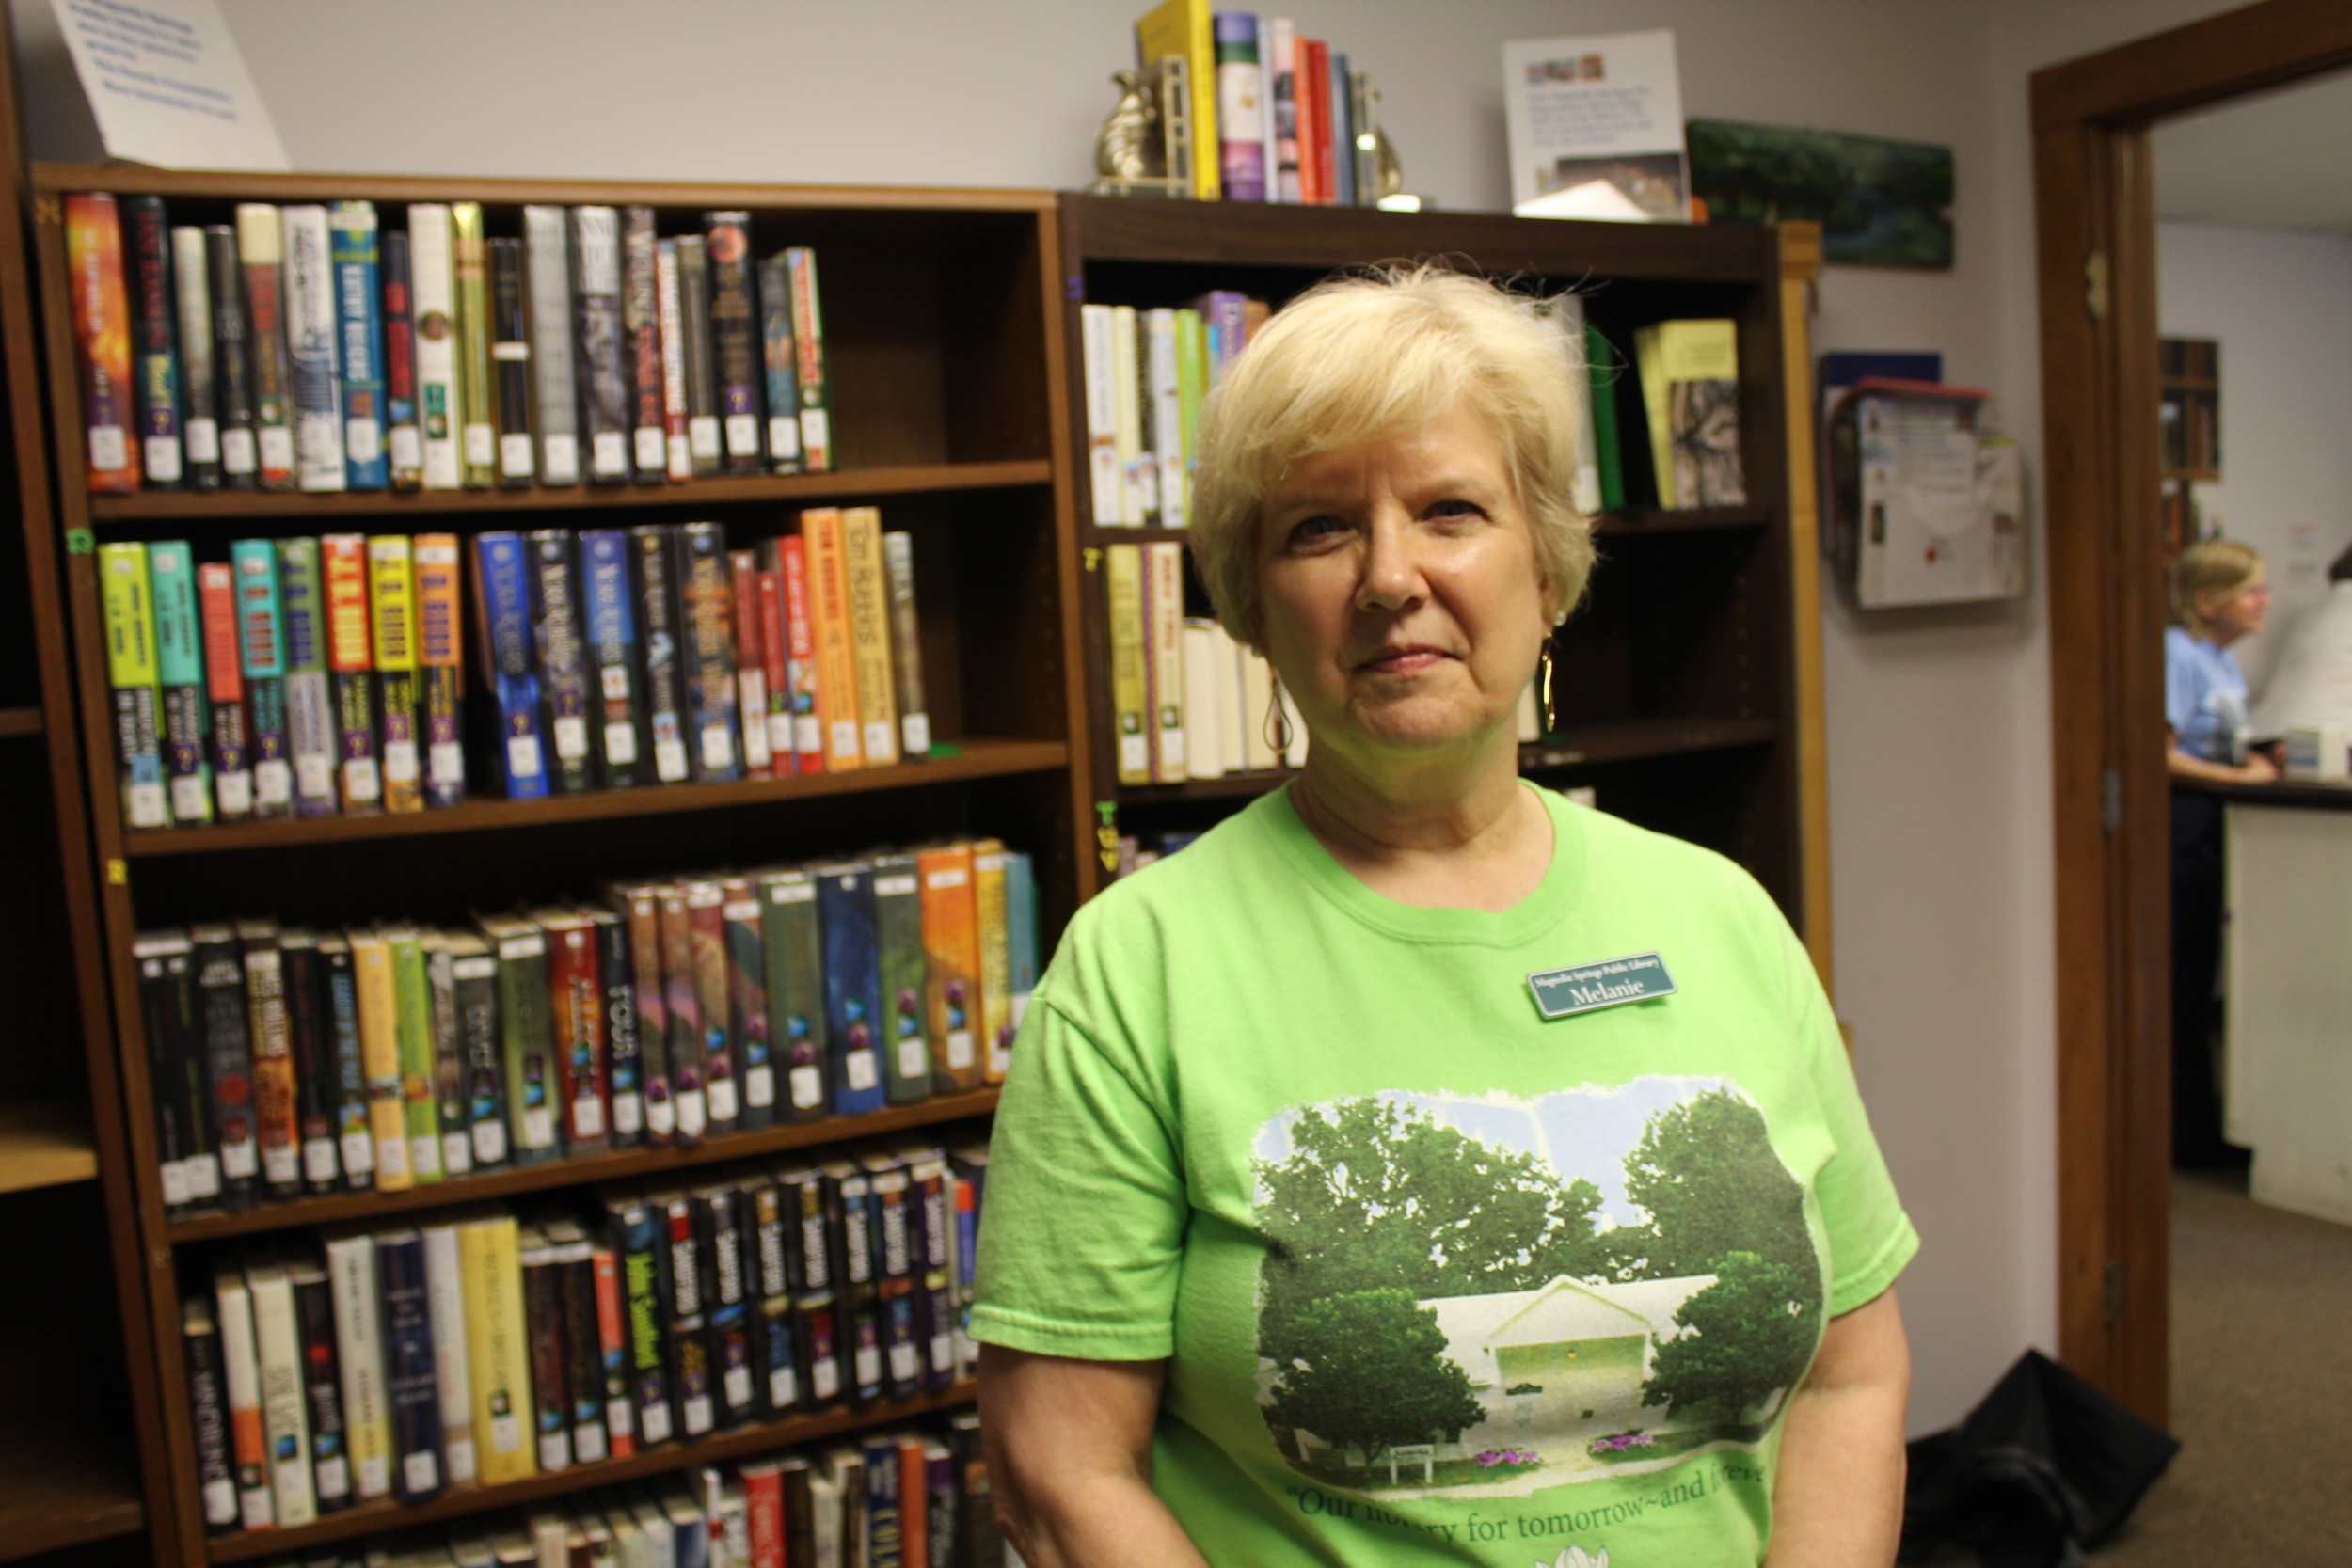 Melanie O'Donnell took the position as librarian of the Magnolia Springs Public Library on Feb. 1.